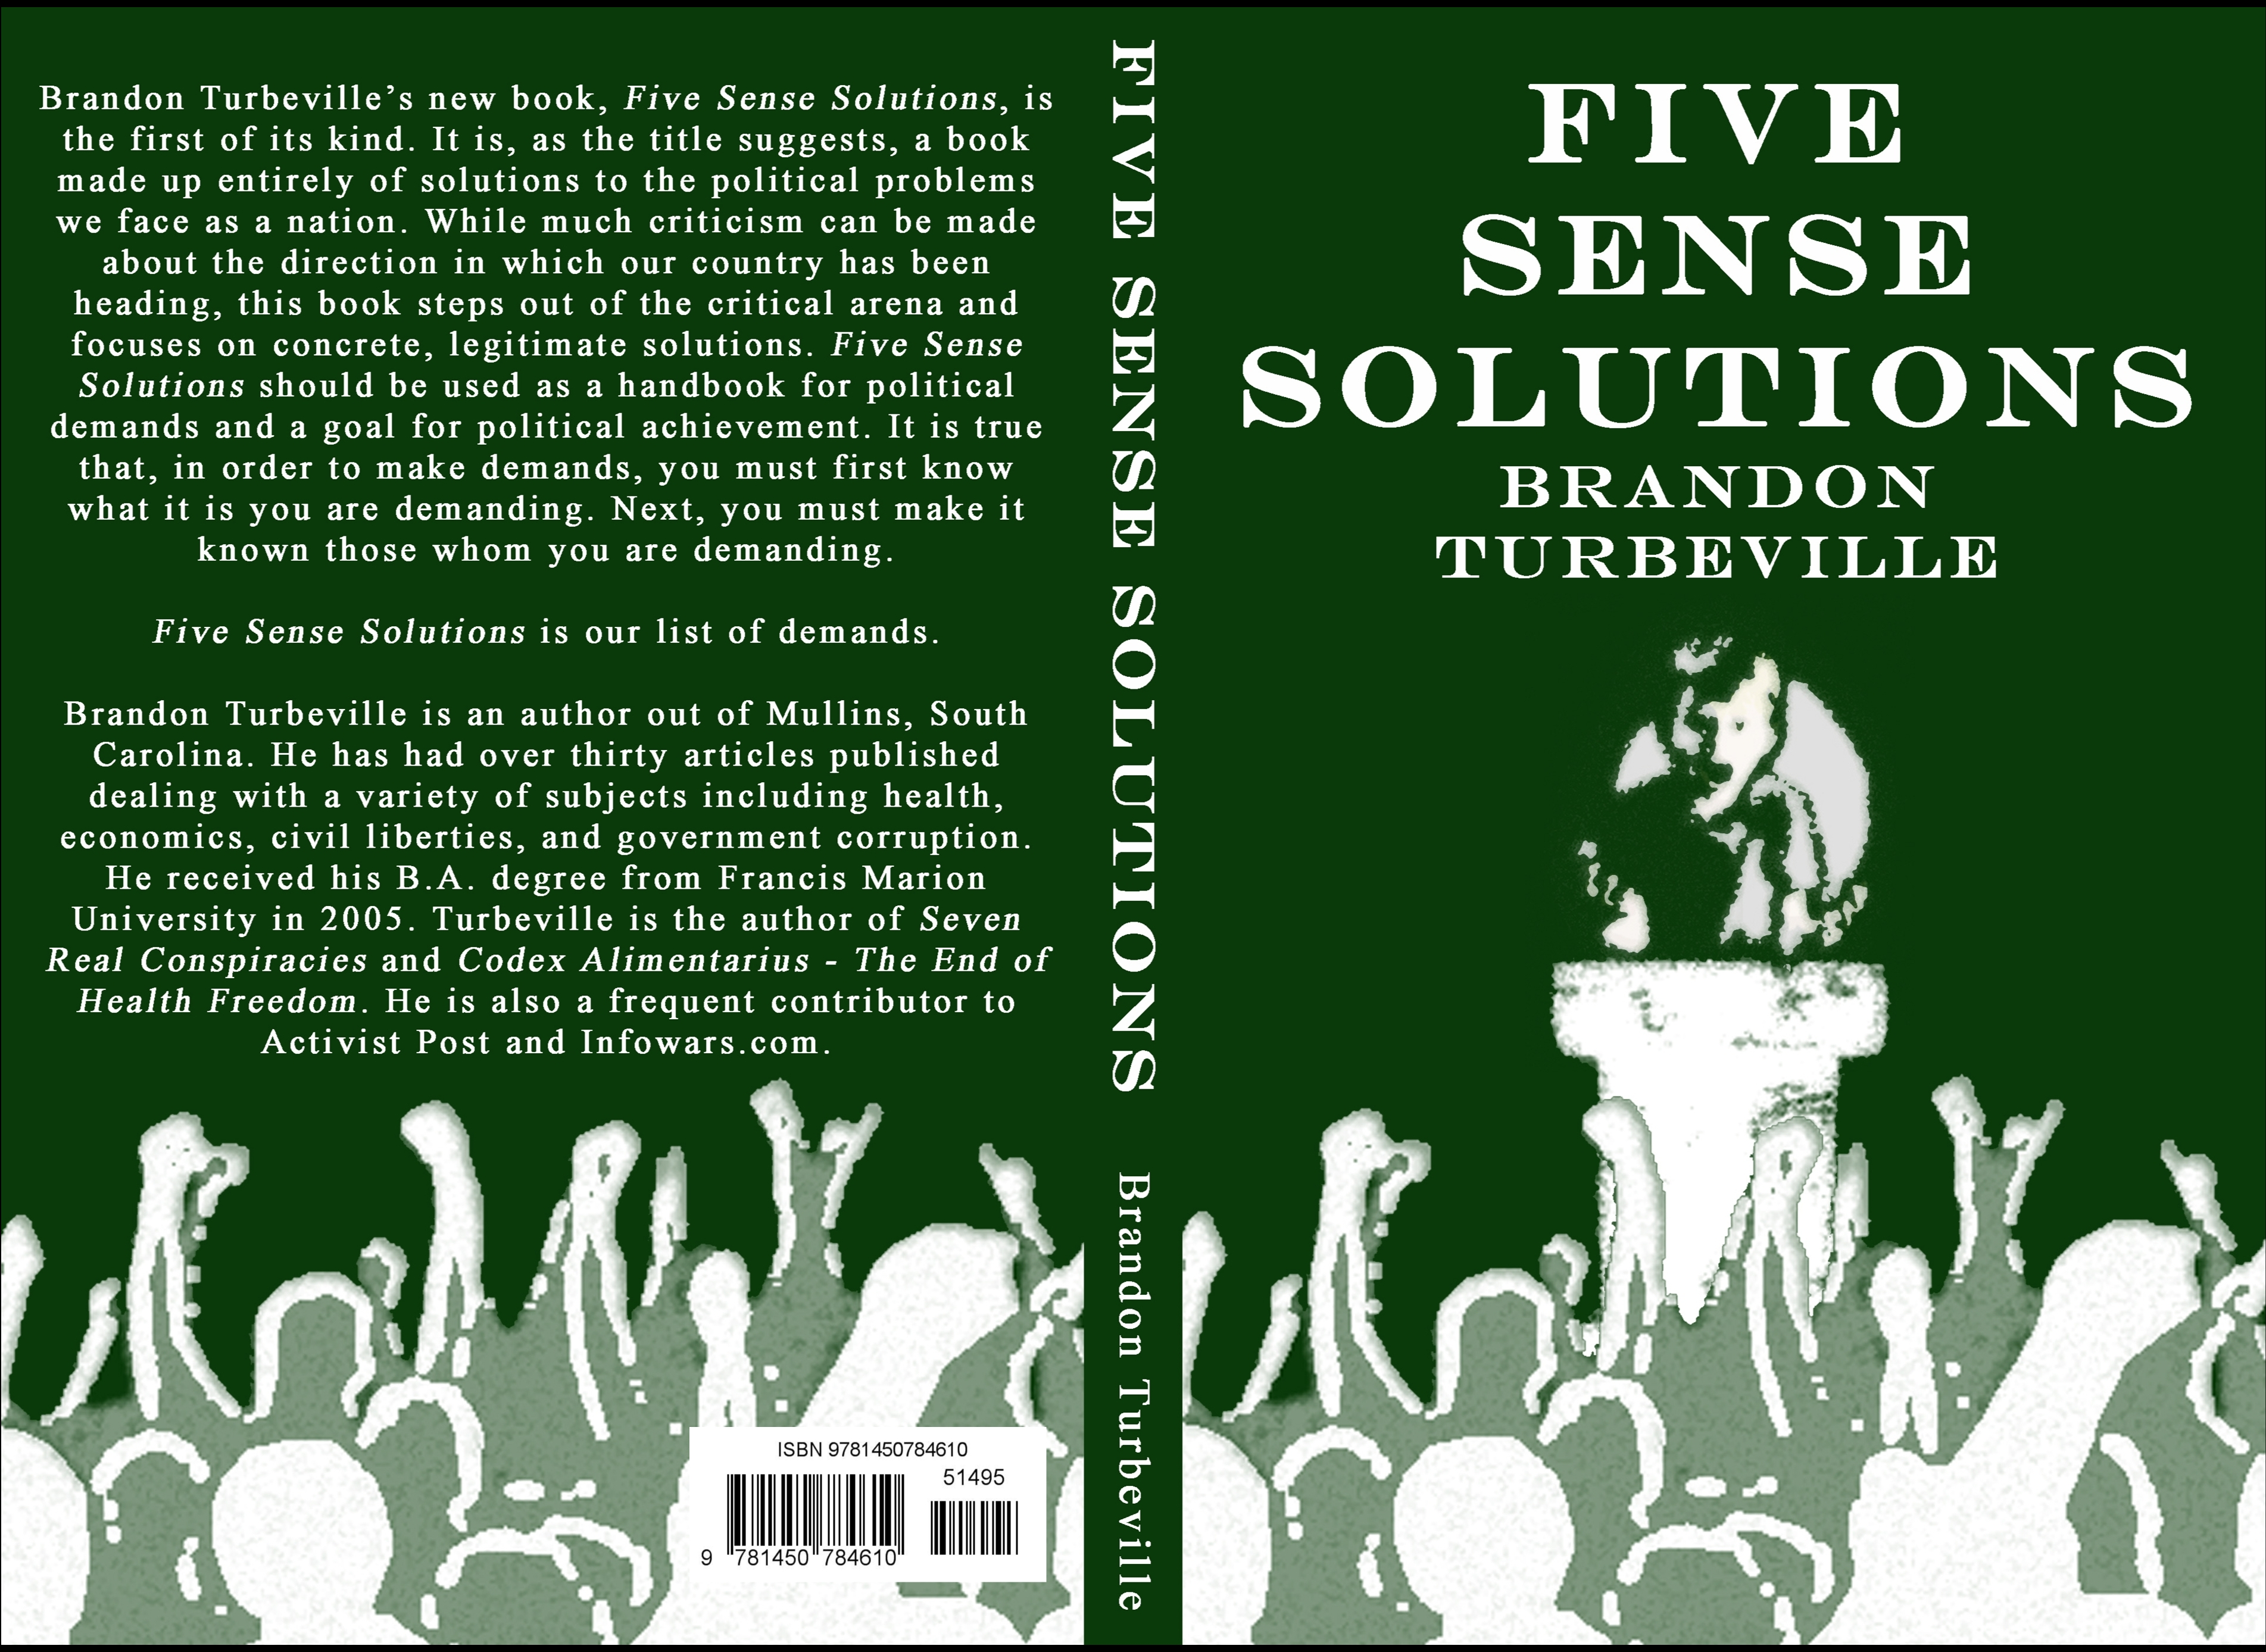 Five Sense Solutions cover image